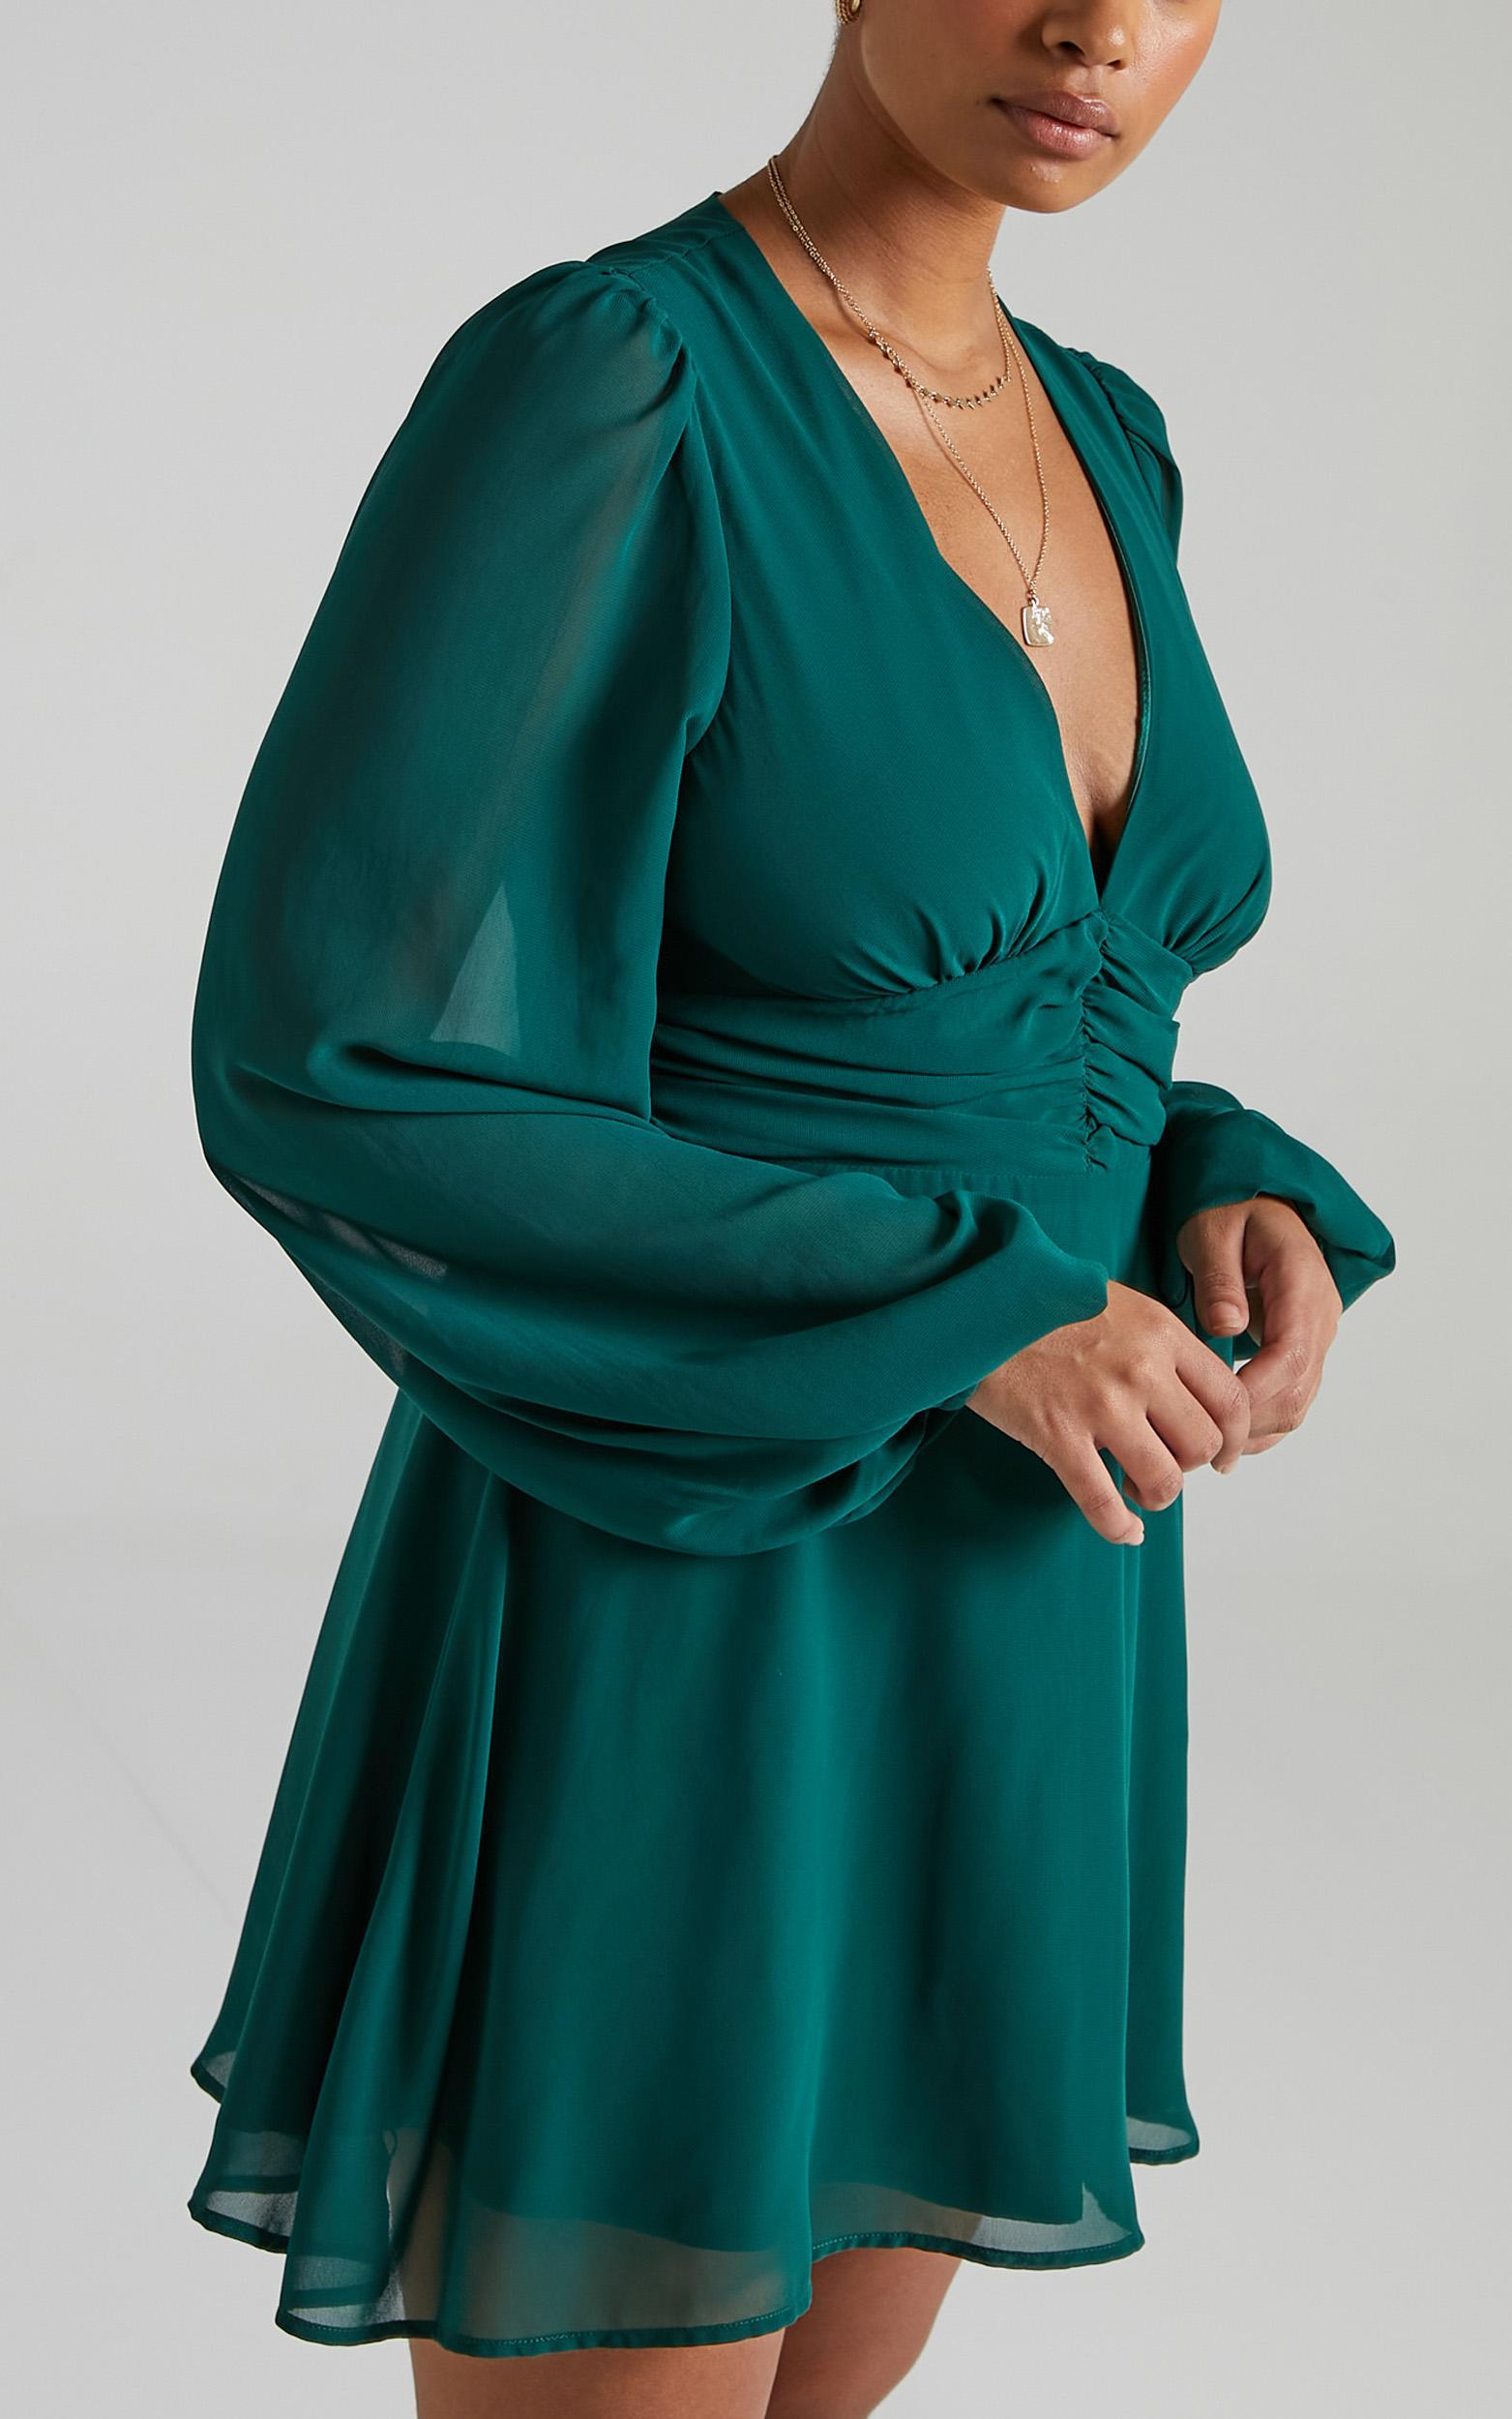 Sheanora Dress in Emerald - 6 (XS), GRN7, hi-res image number null